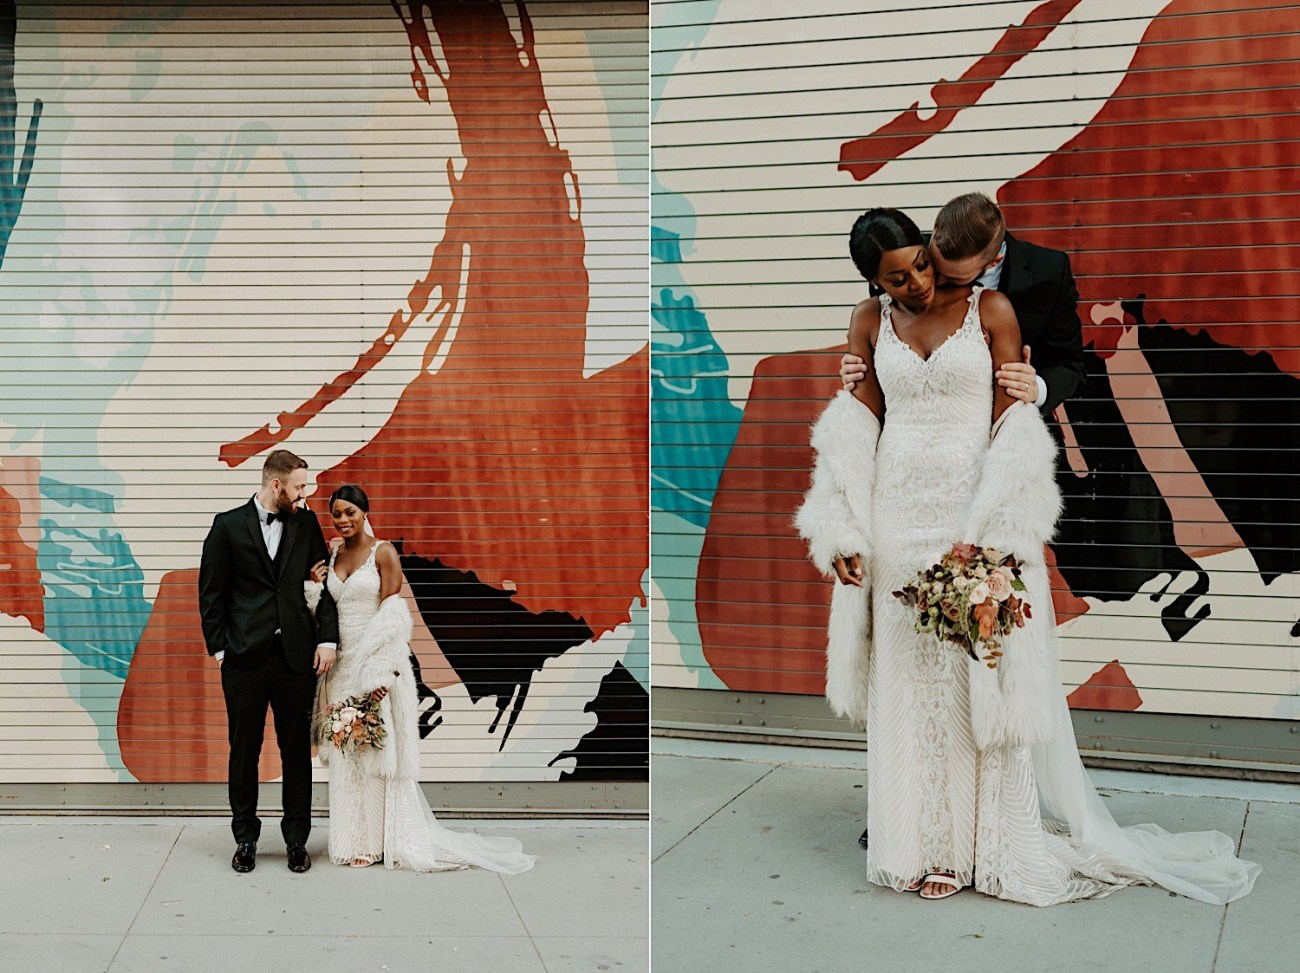 Brooklyn Dumbo Elopement NYC Wedding Photographer New York Elopement 11